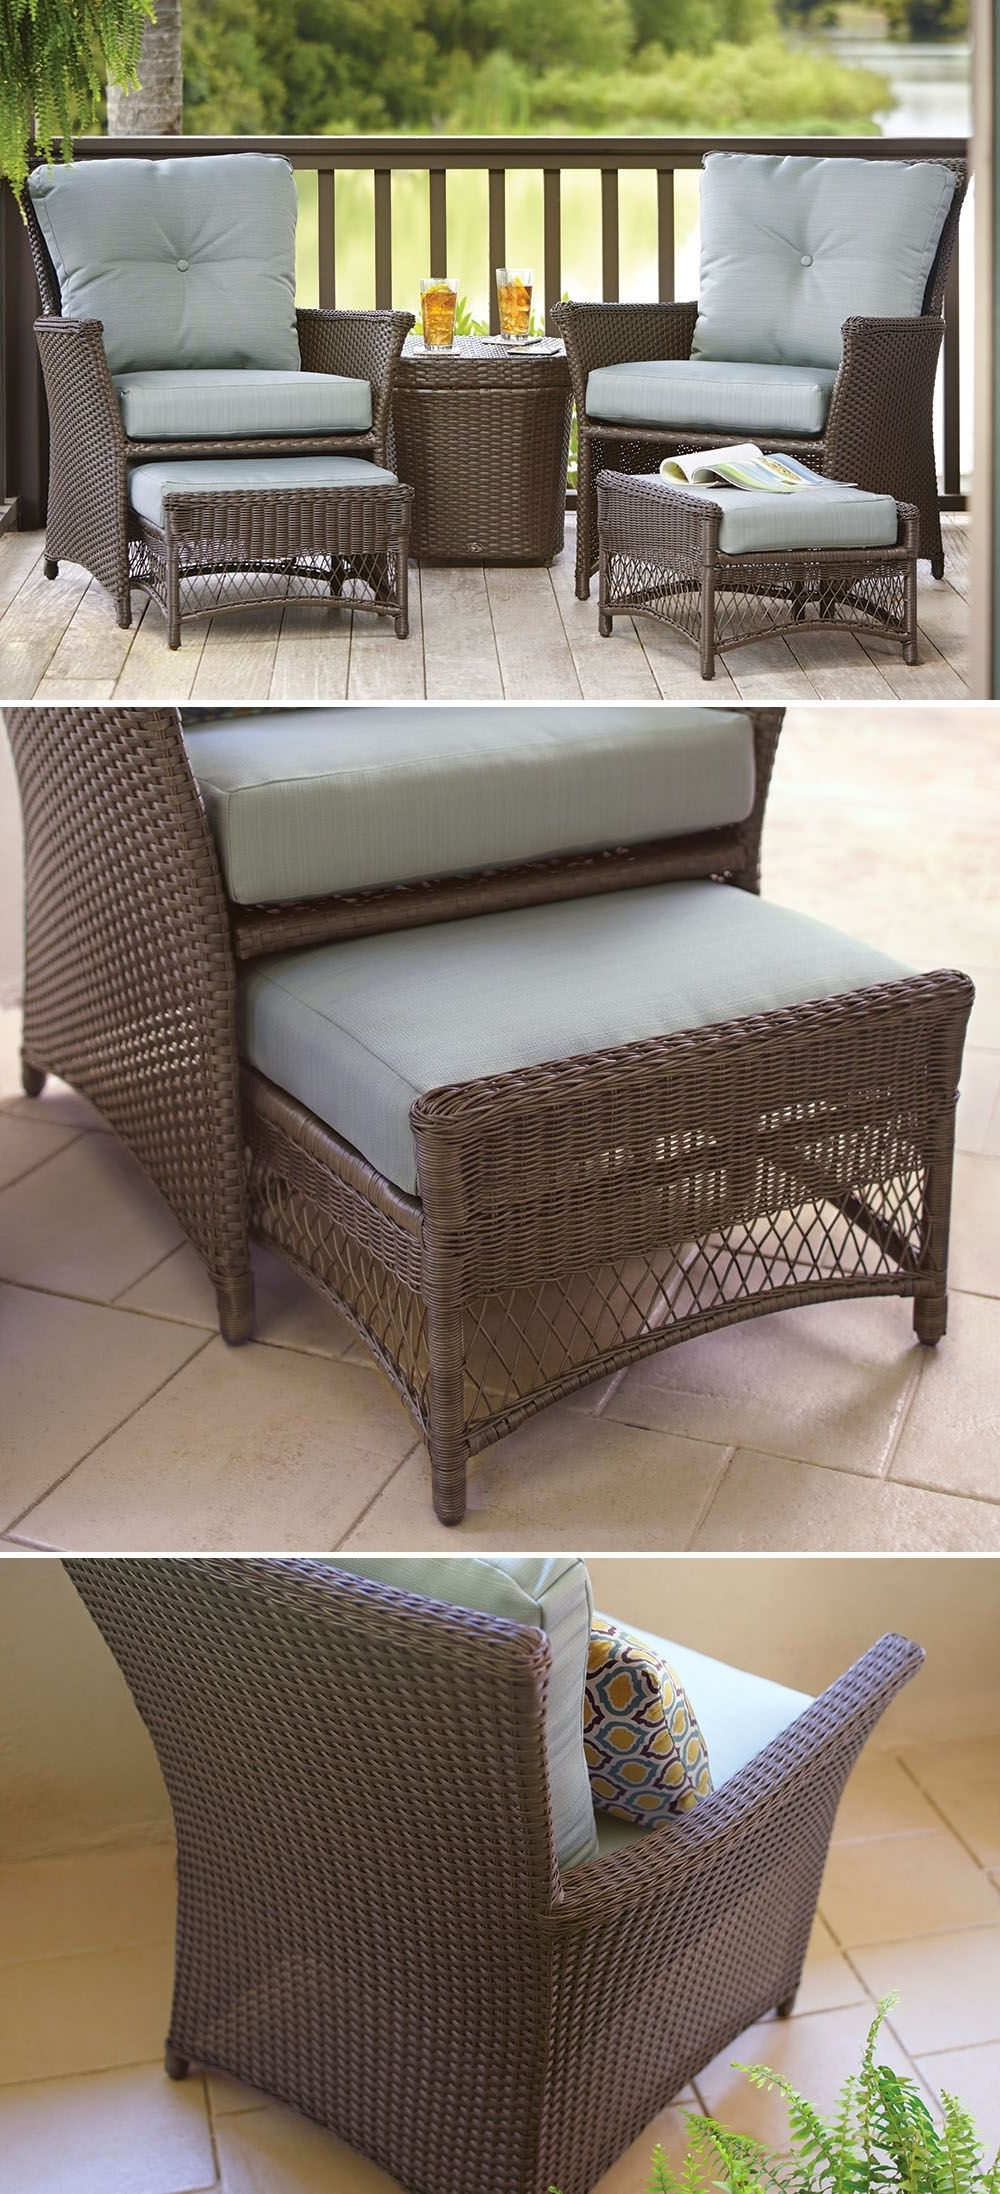 Patio Umbrellas For Small Spaces Pertaining To Fashionable This Affordable Patio Set Is Just The Right Size For Your Small (Gallery 19 of 20)